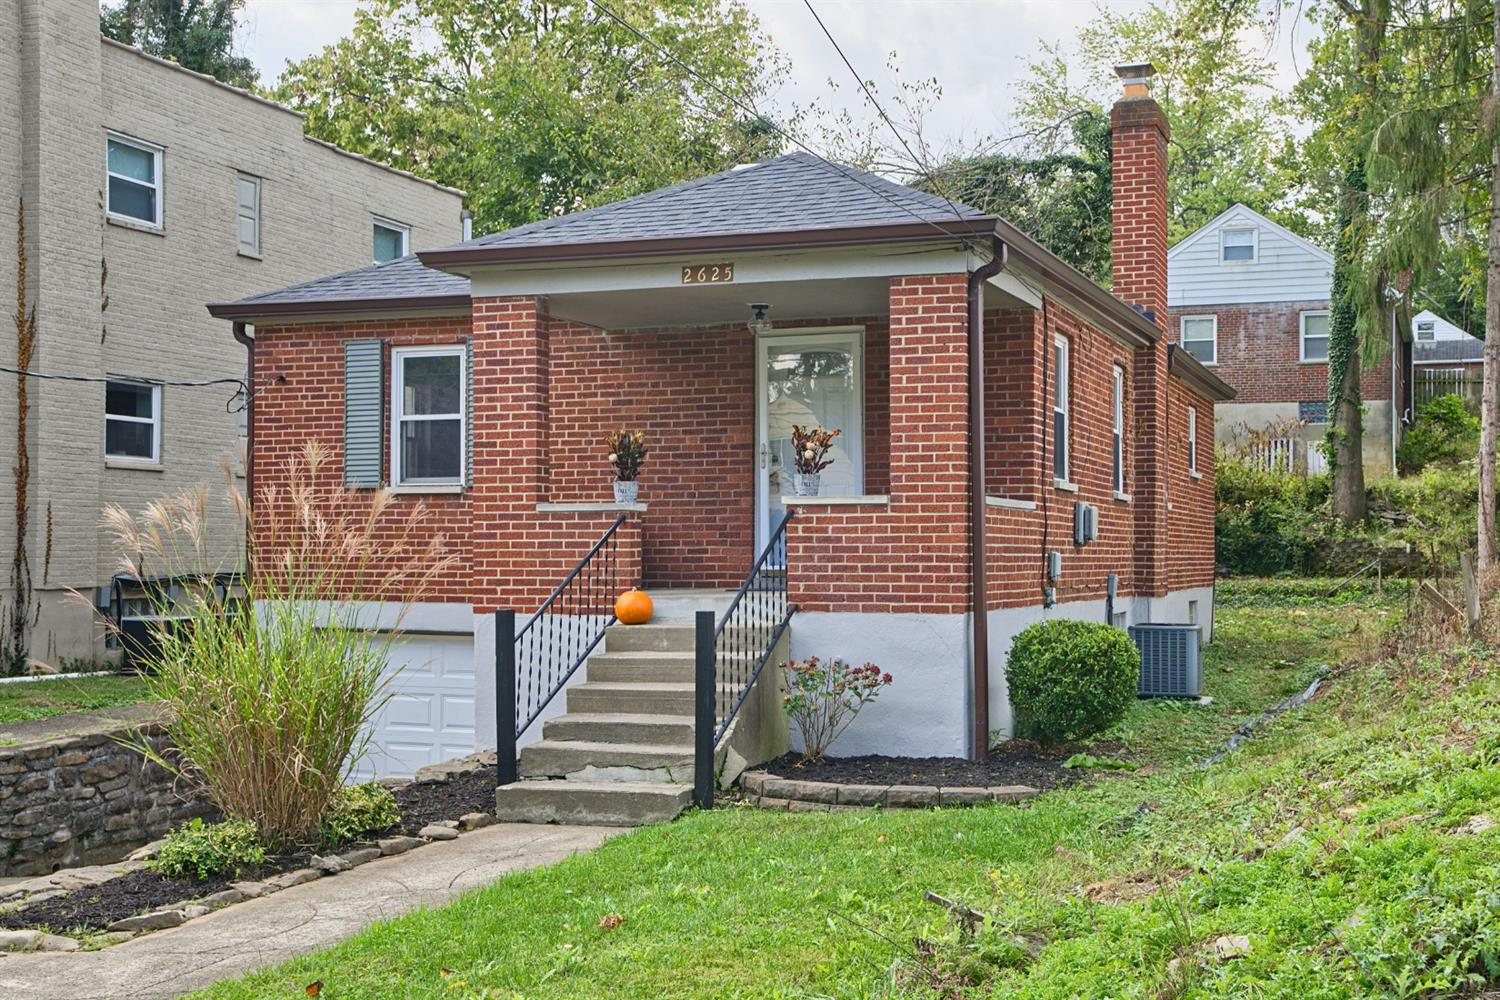 2625 Bremont Avenue, Golf Manor, Ohio 45237, 2 Bedrooms Bedrooms, 5 Rooms Rooms,1 BathroomBathrooms,Single Family Residence,For Sale,Bremont,1718884